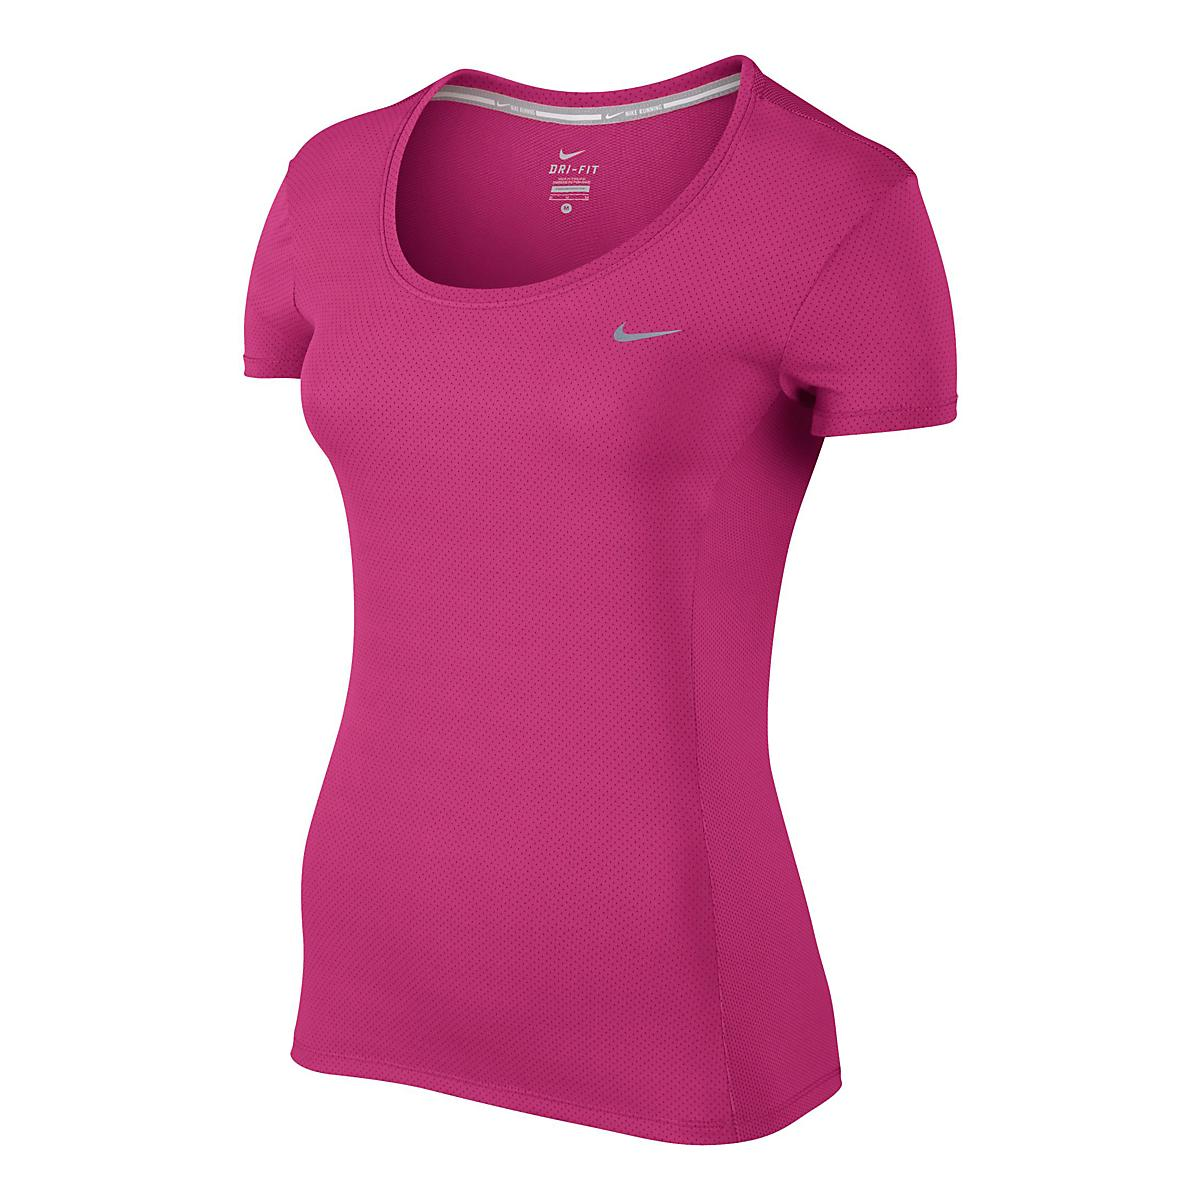 ff871d0ea Womens Nike Dri-Fit Contour Short Sleeve Technical Tops at Road Runner  Sports